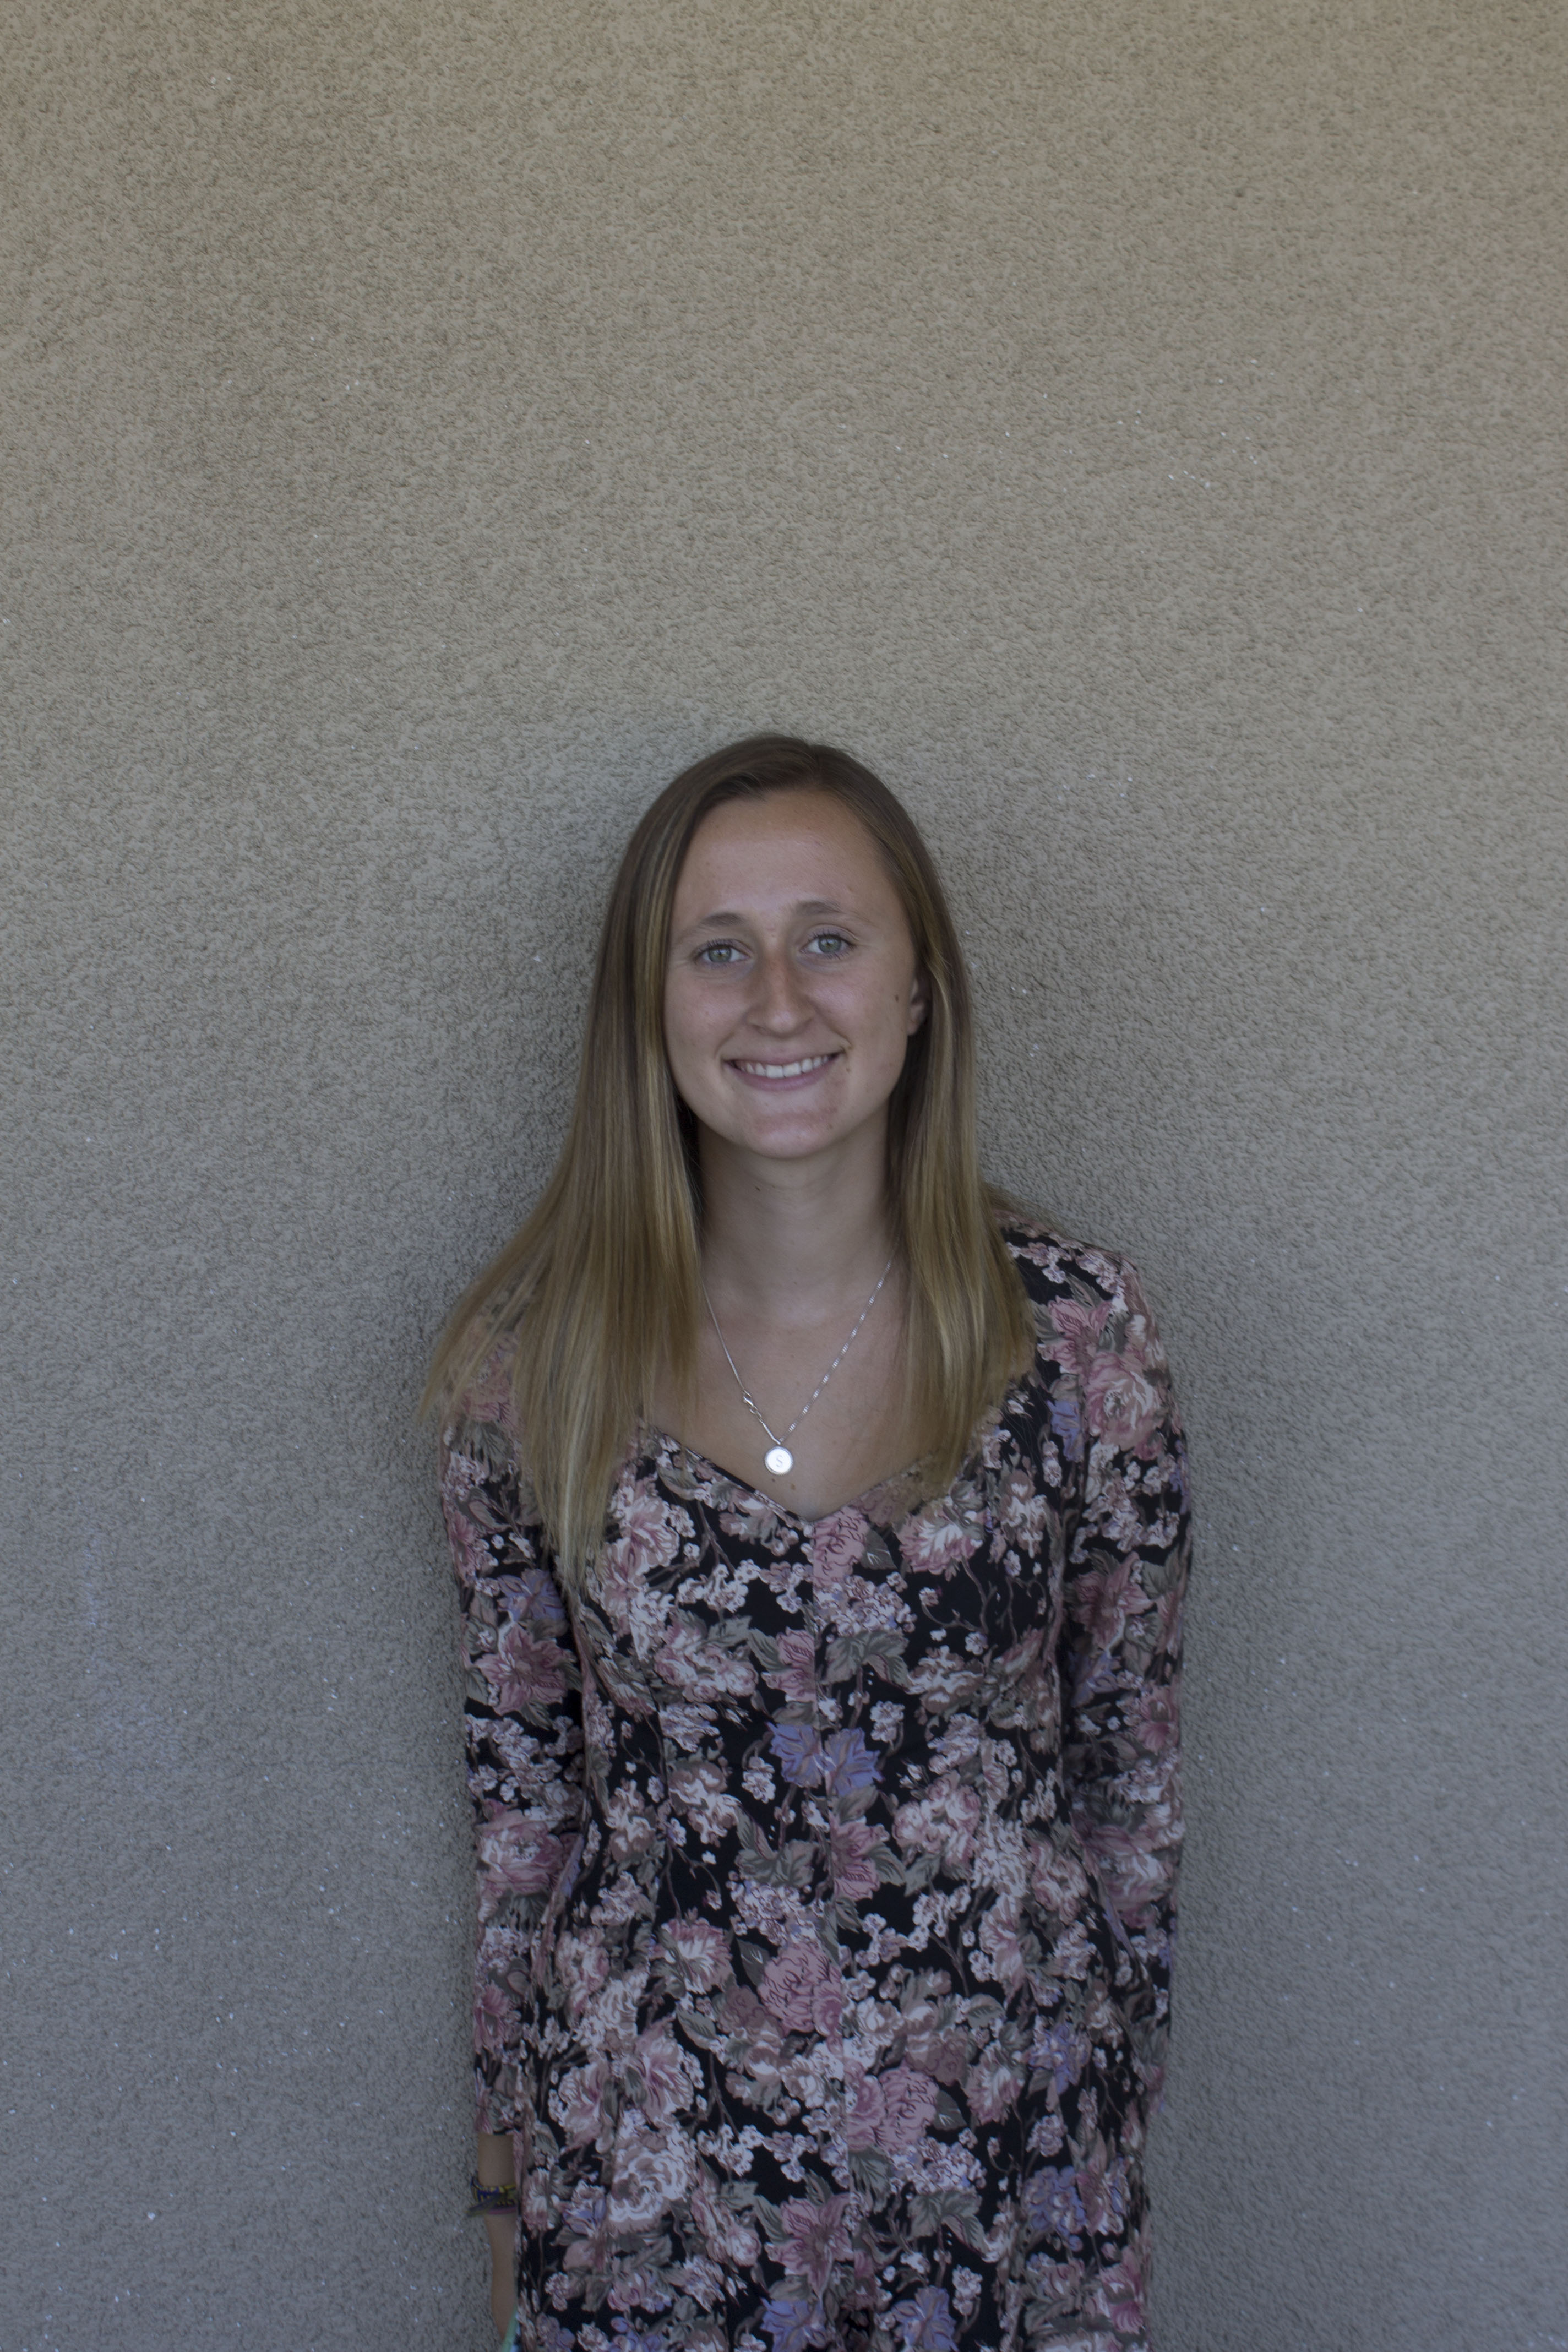 Sophie Comeau is a senior at Los Gatos High School and this is her first year on the El Gato staff. She plays field hockey, soccer, and lacrosse. She also own two dogs and loves to travel.